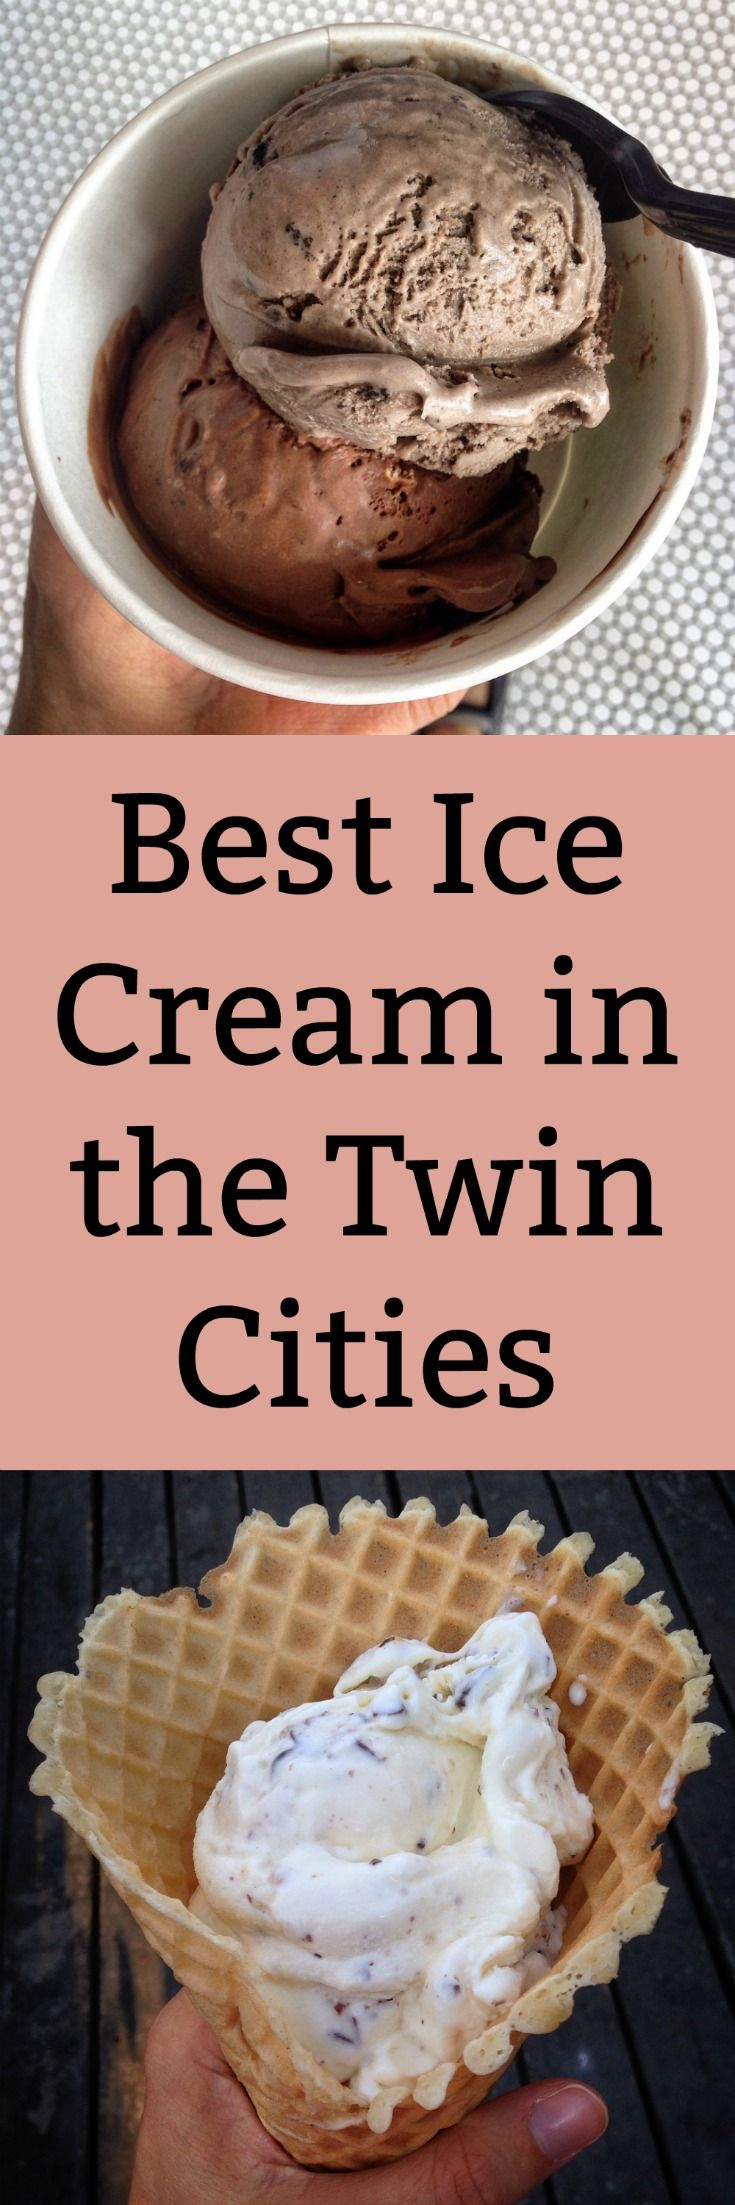 Best Ice Cream in the Twin Cities